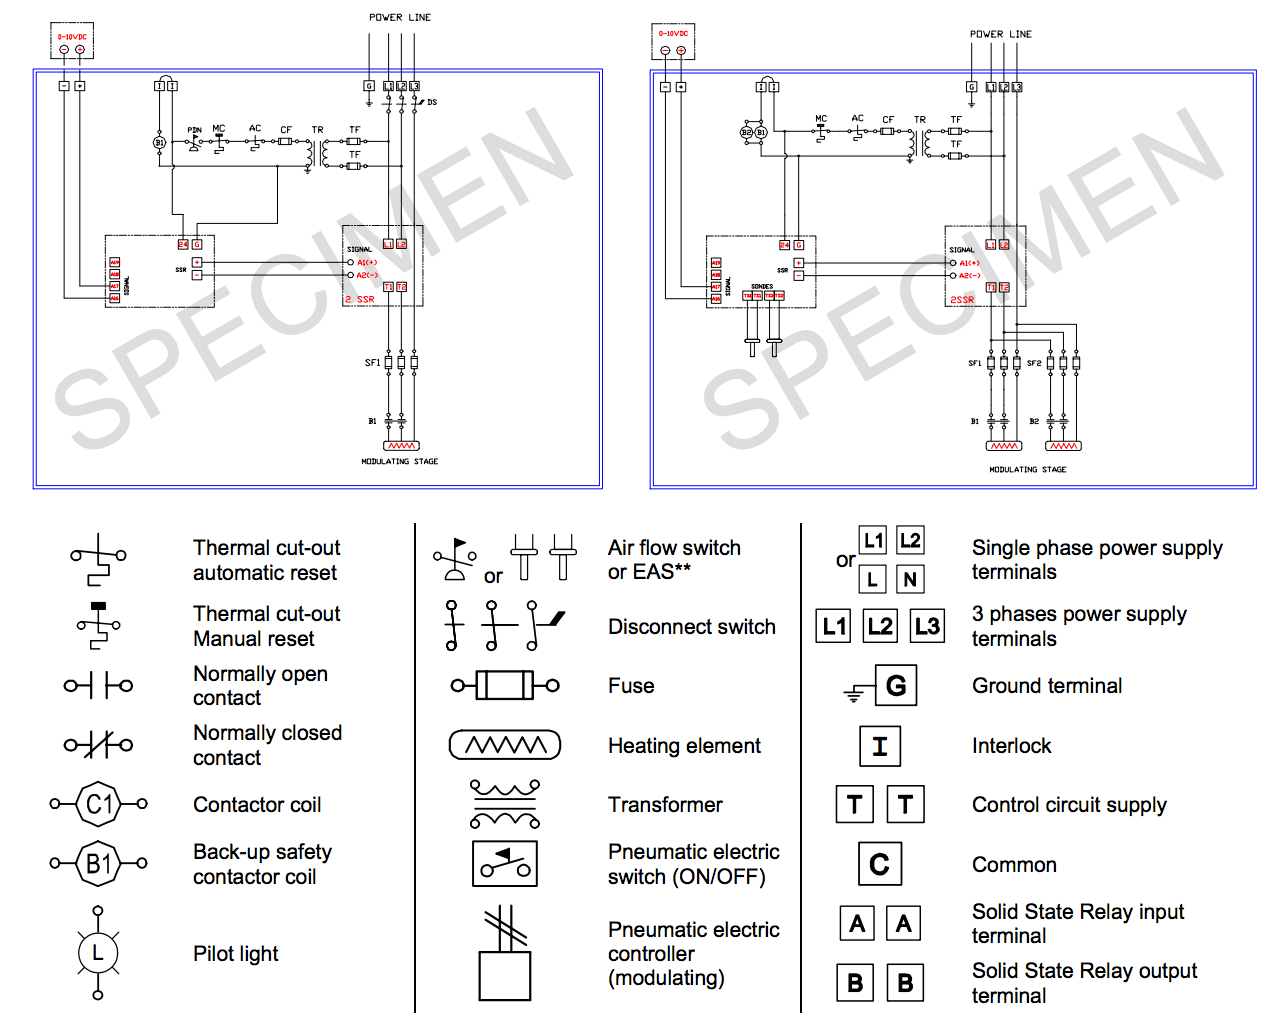 2010 acura tsx fuse box diagram acura tsx engine diagram